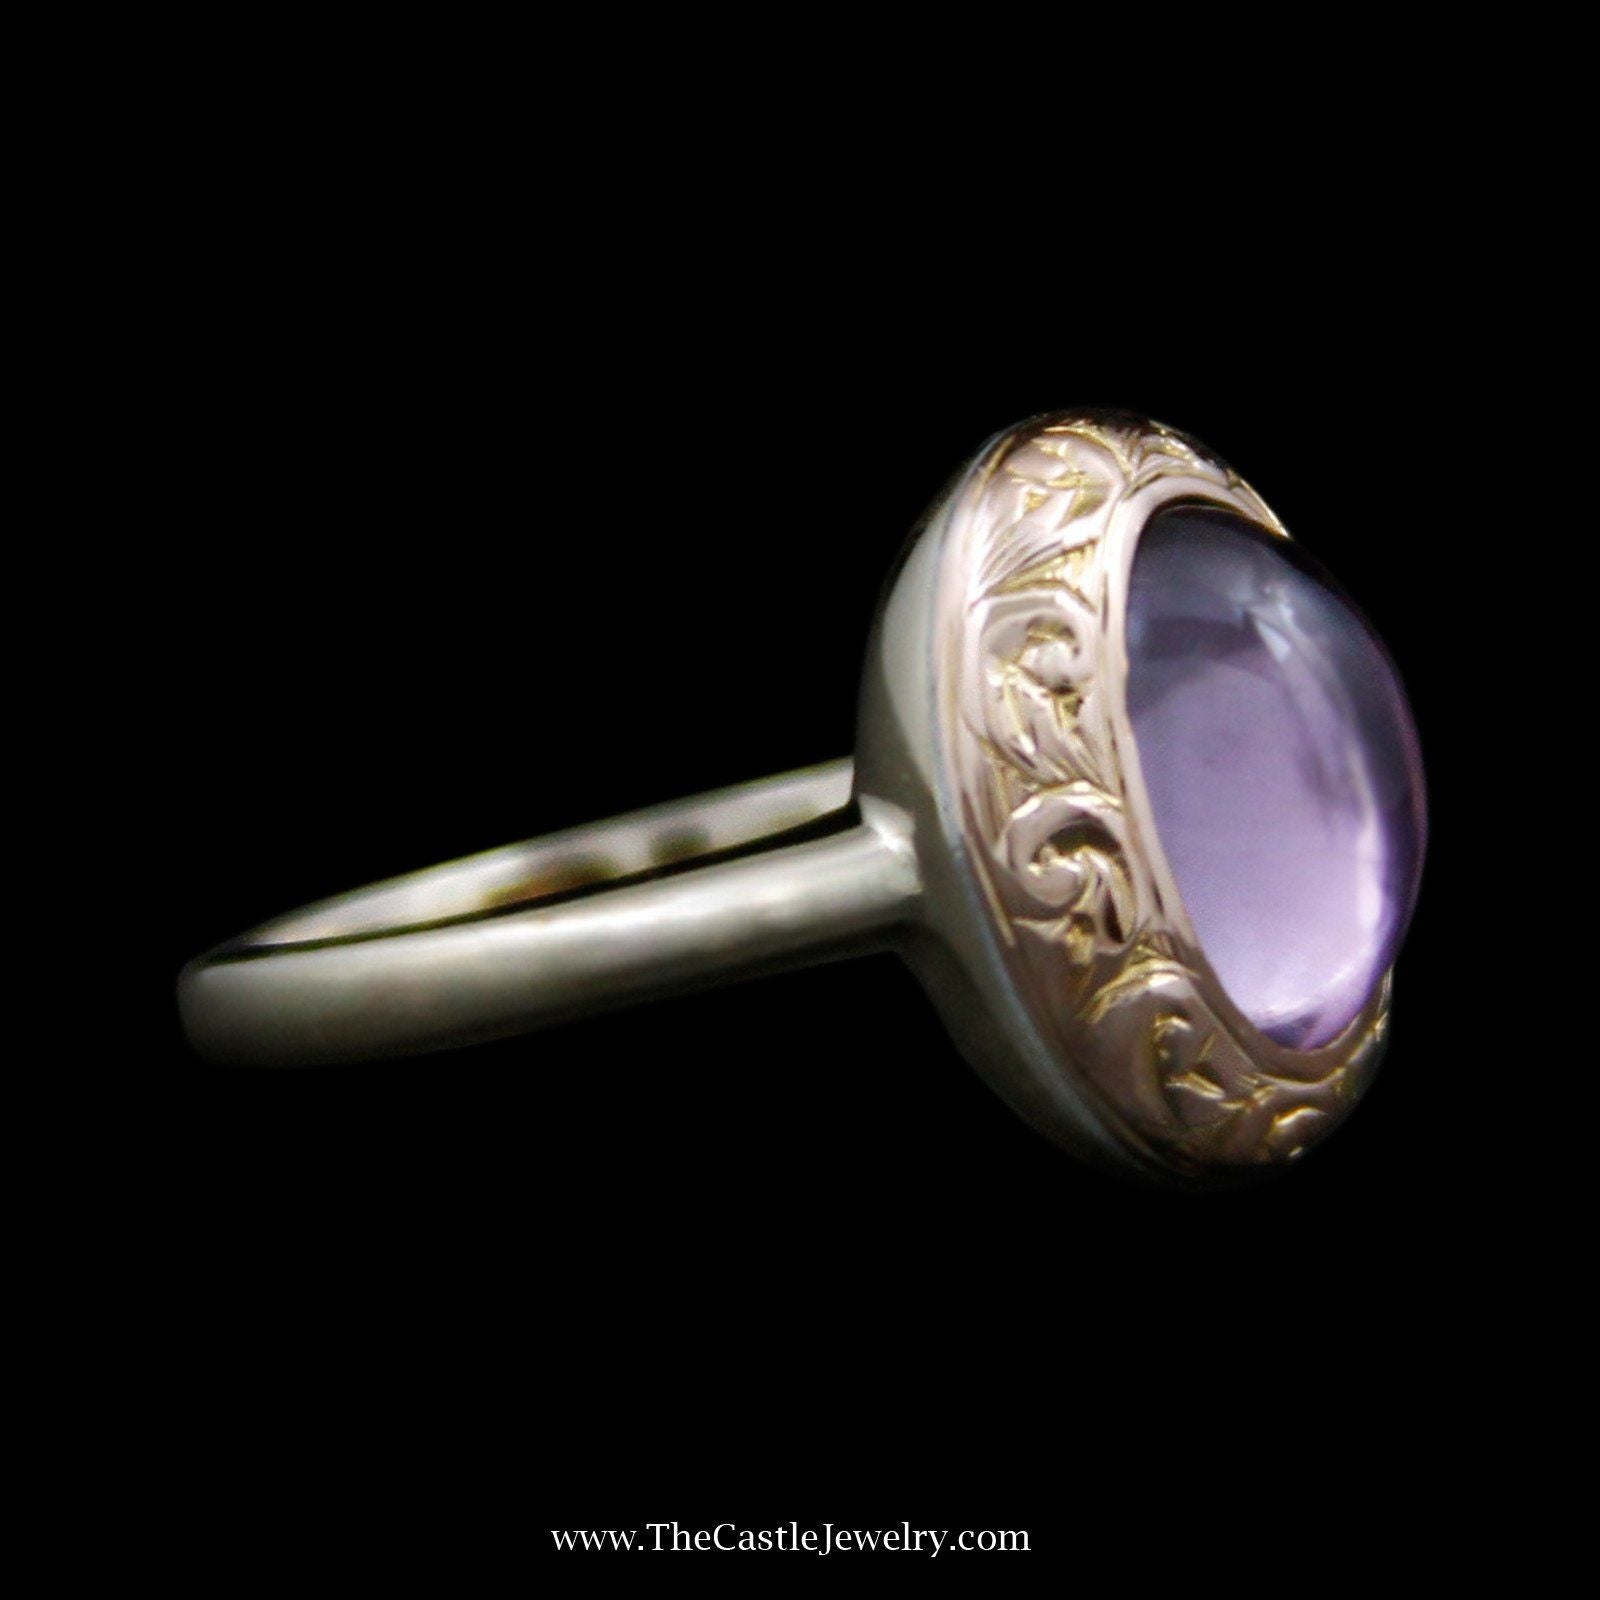 Charming Oval Cabochon Amethyst Ring with Swirl Design Bezel in 14k Yellow Gold-2